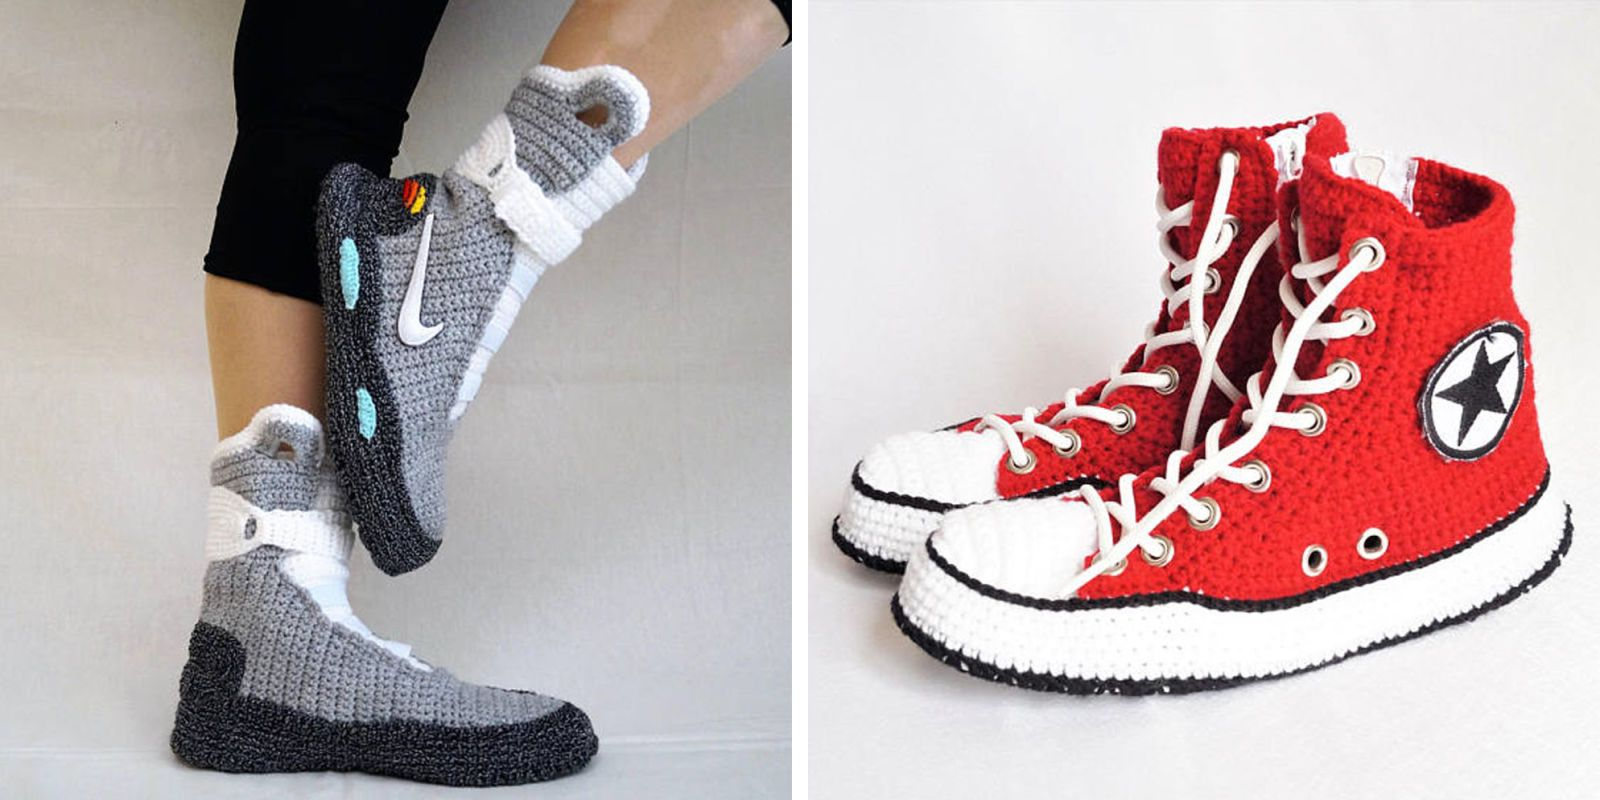 These Knitted Slippers Look Exactly Like Nike and Converse Sneakers